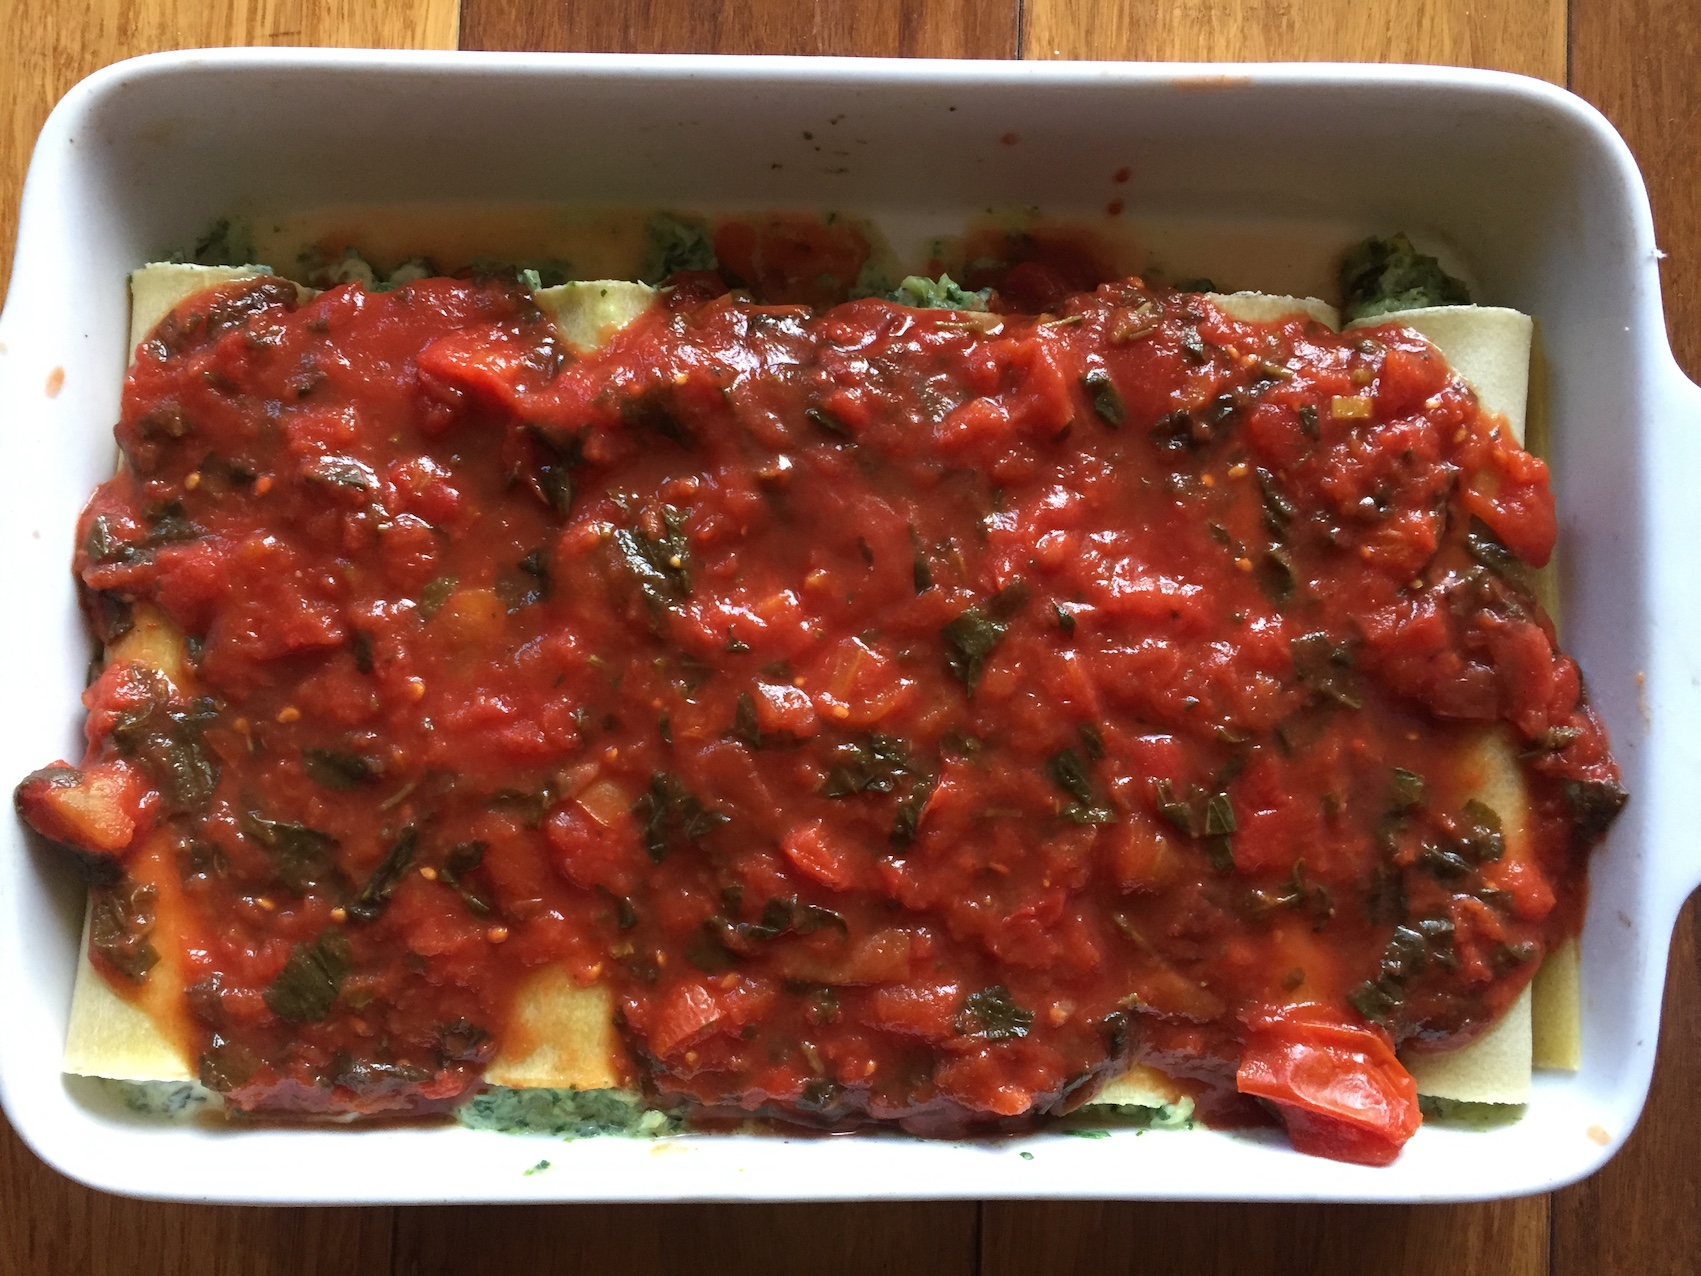 Topped with tasty tomato and basil sauce